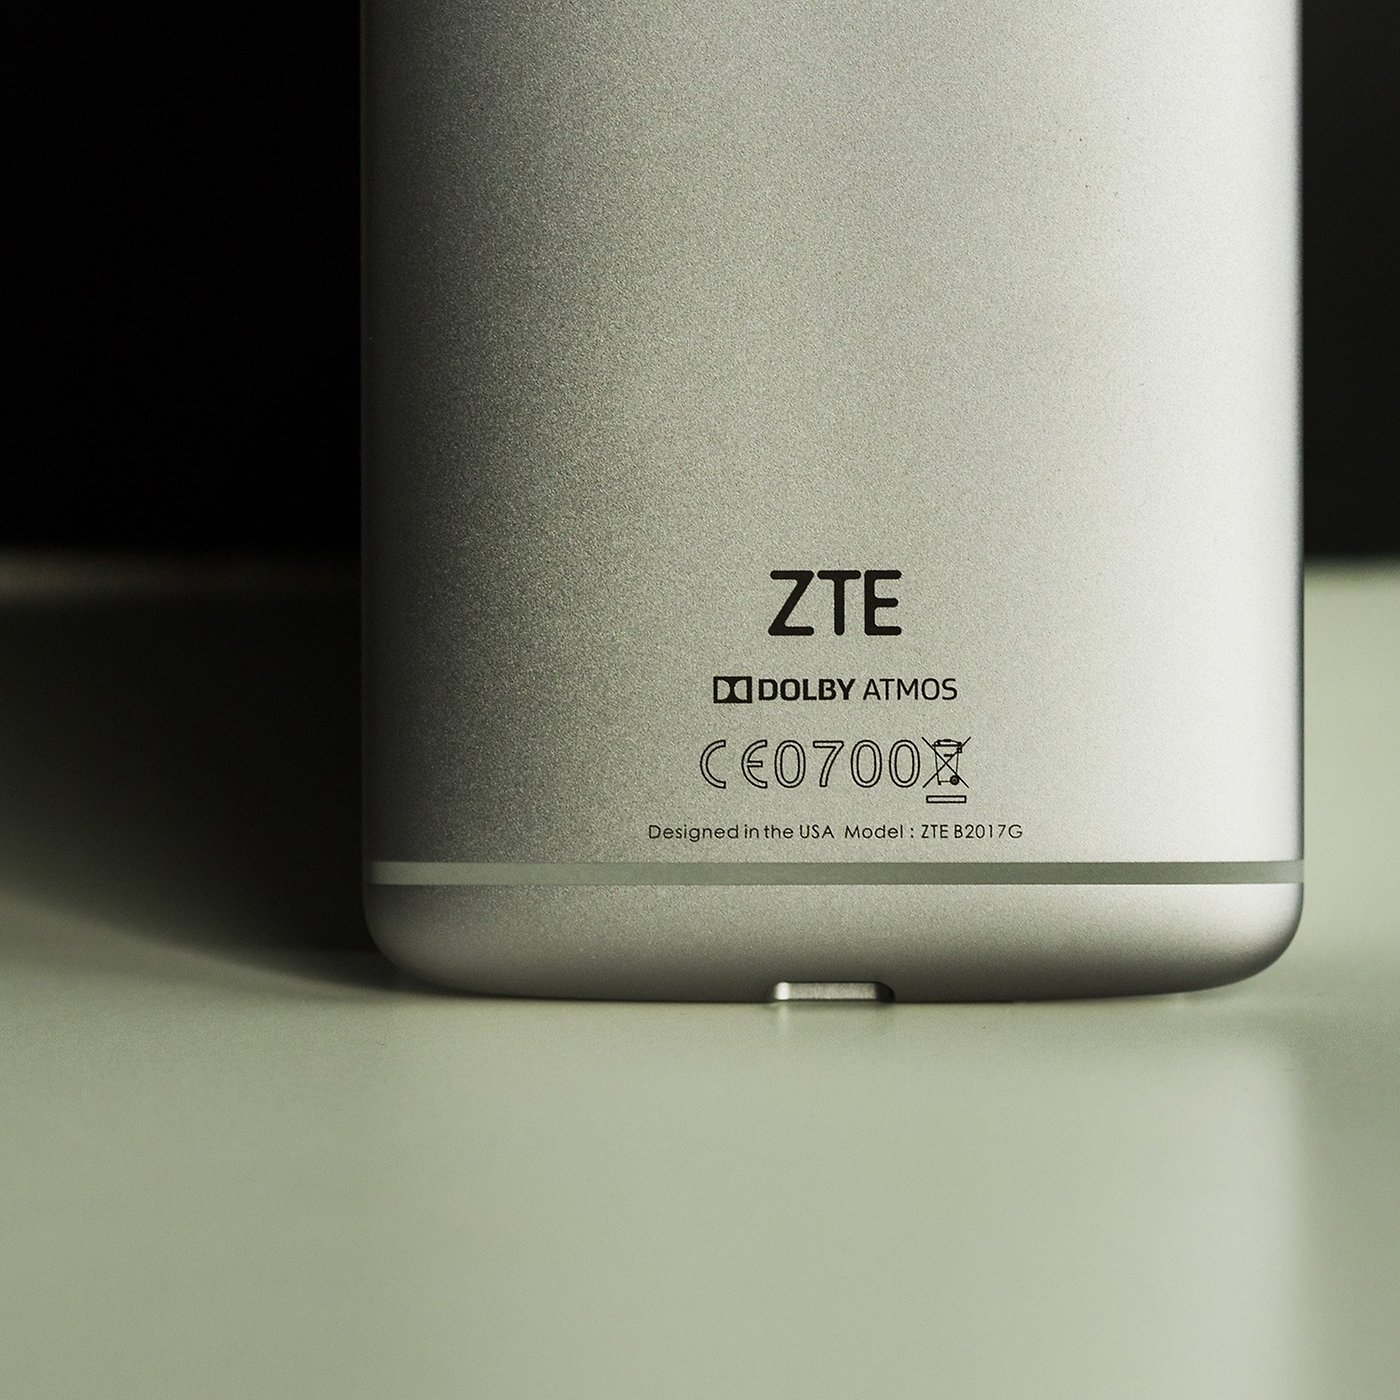 Trump wants to save ZTE - for fear of a Chinese backlash